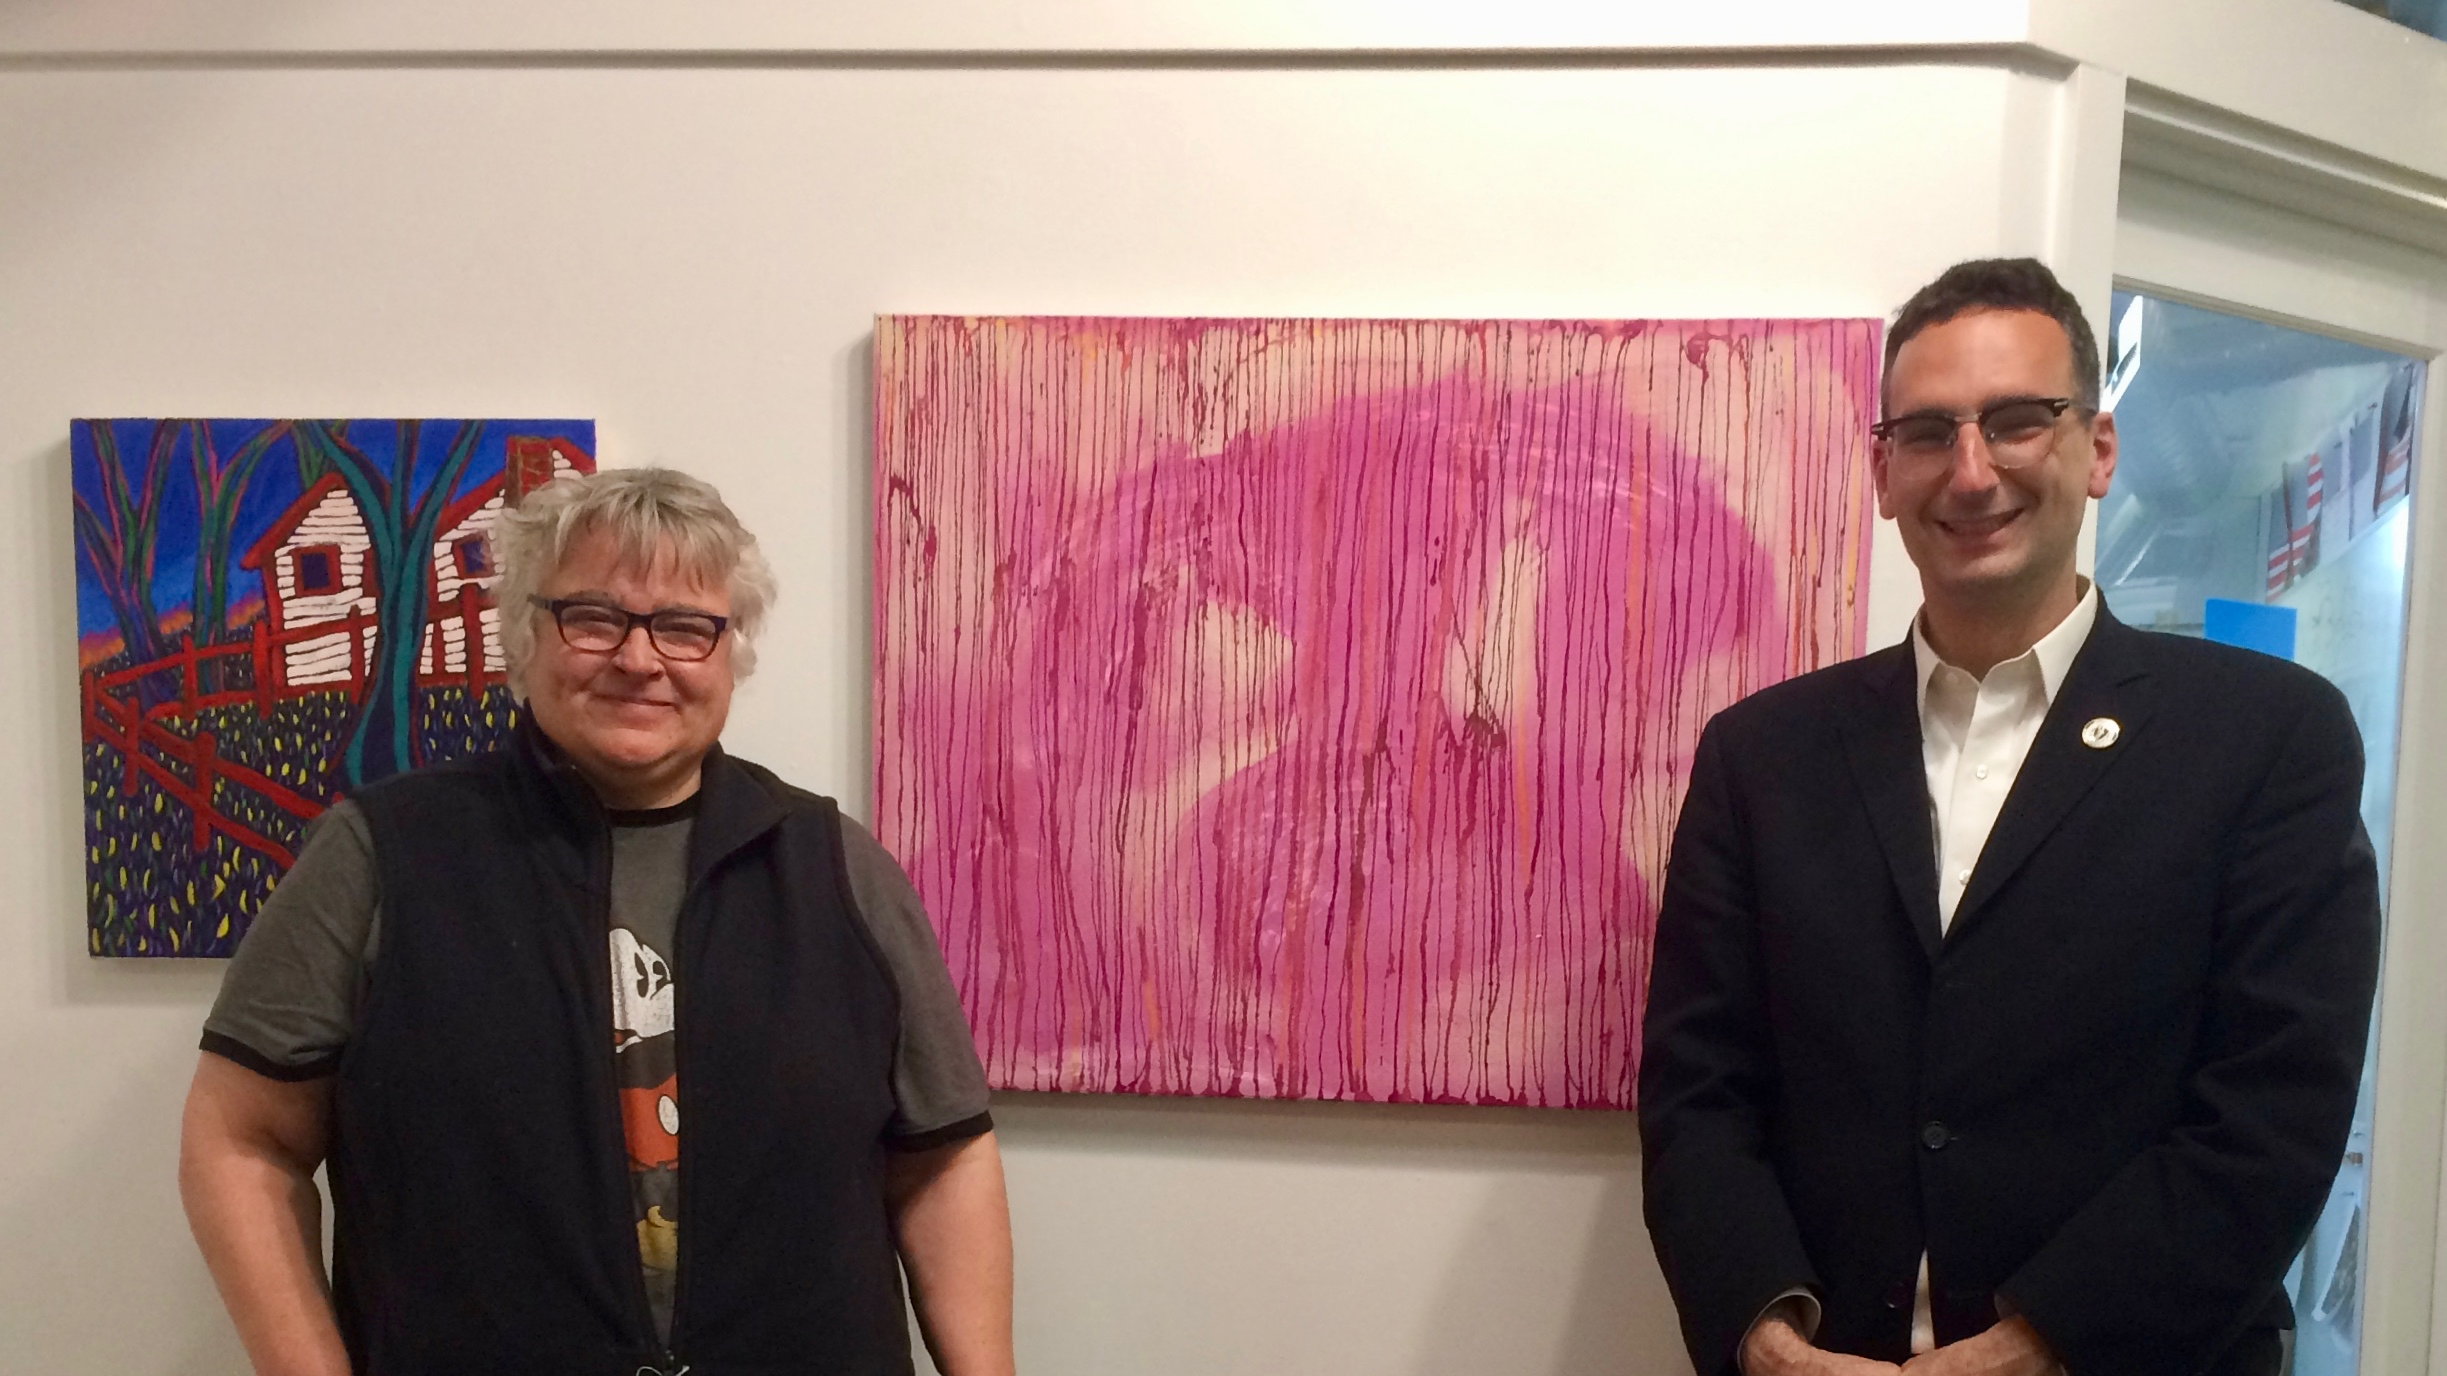 Tommy vitolo with artist at Gateway Arts studio in Brookline Village